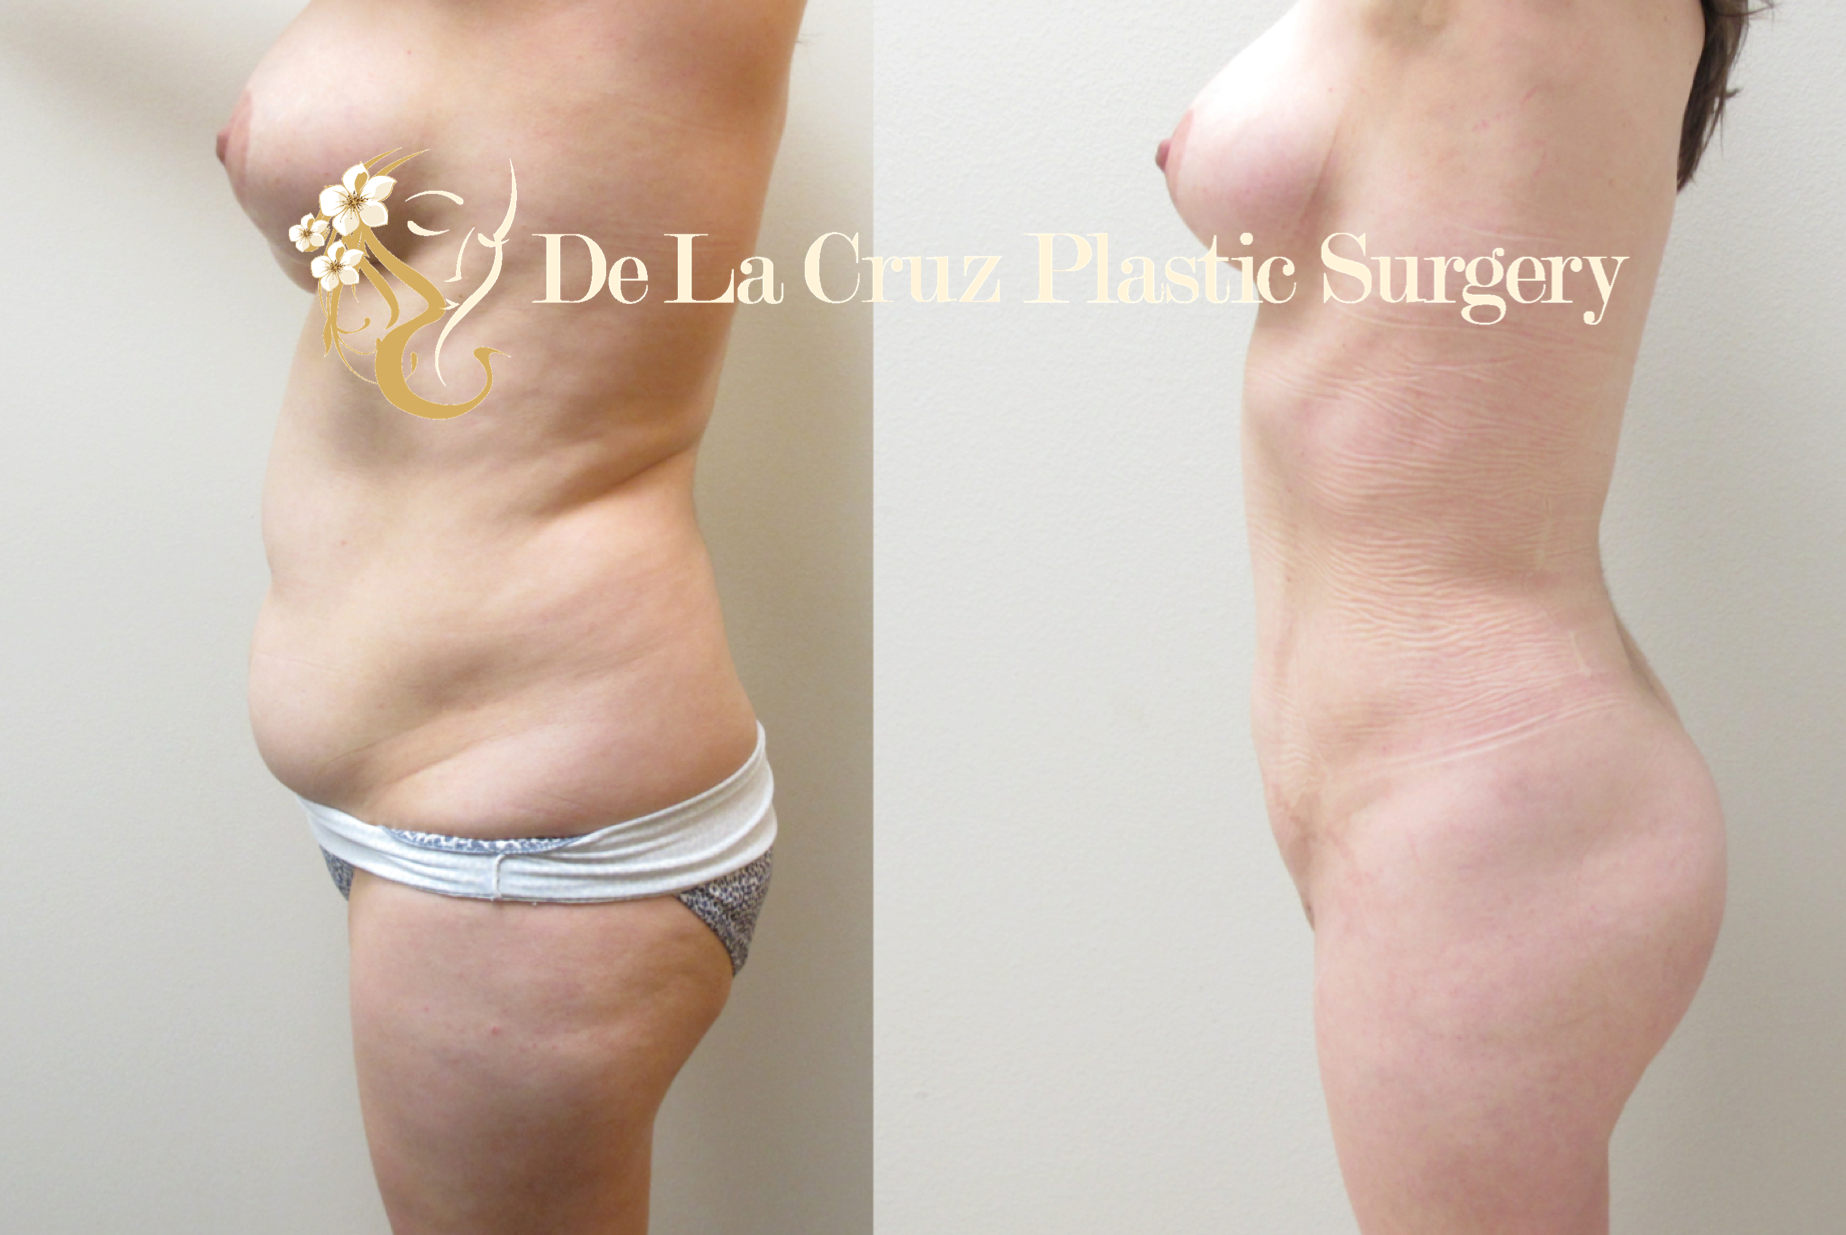 Before & After Photos:  4D VASER Liposuction 6 weeks after surgery.  Procedure performed by Dr. De La Cruz